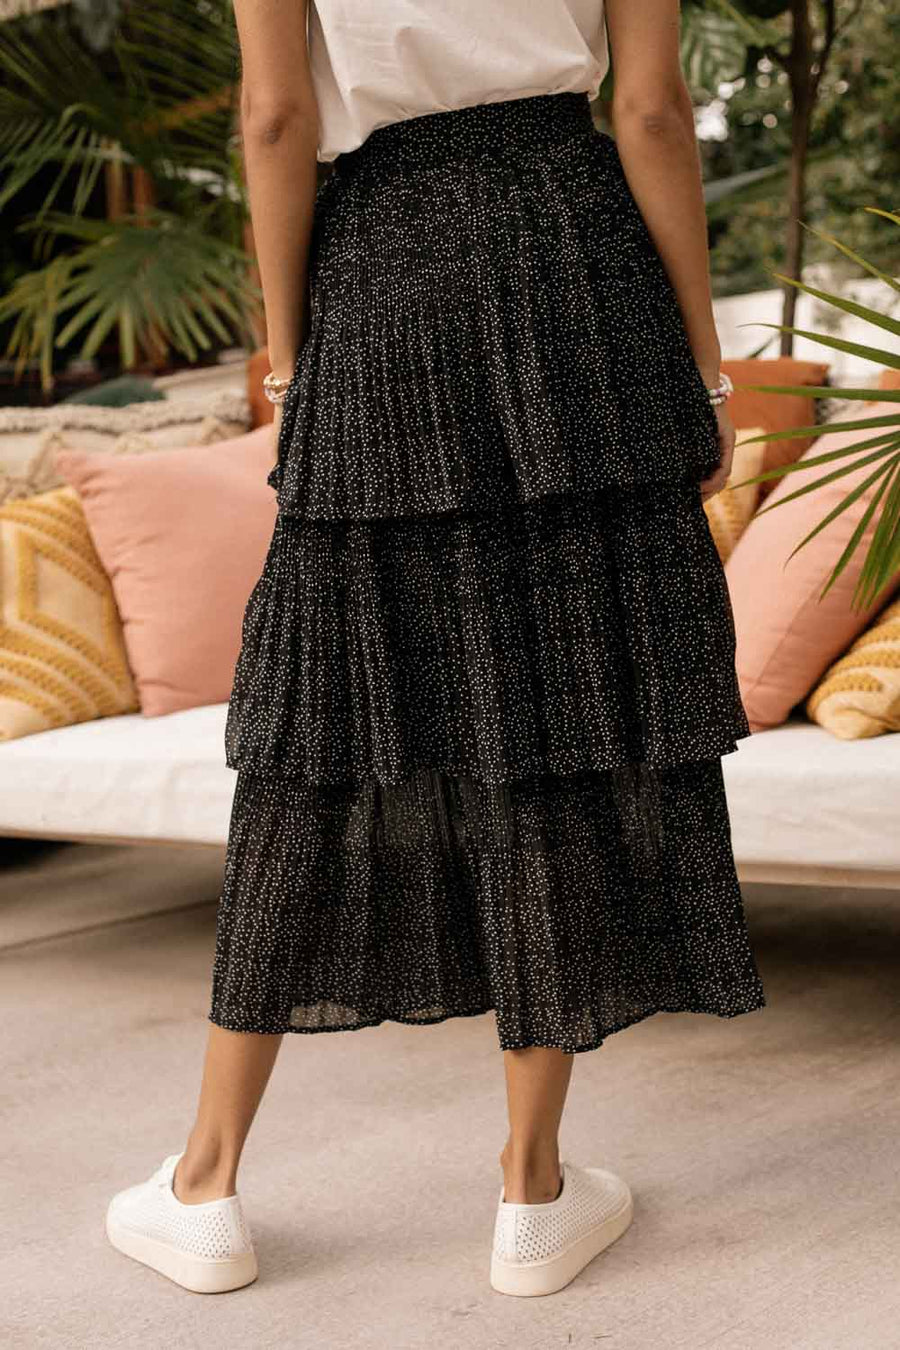 Tiered Polka Dot Midi Skirt in Black